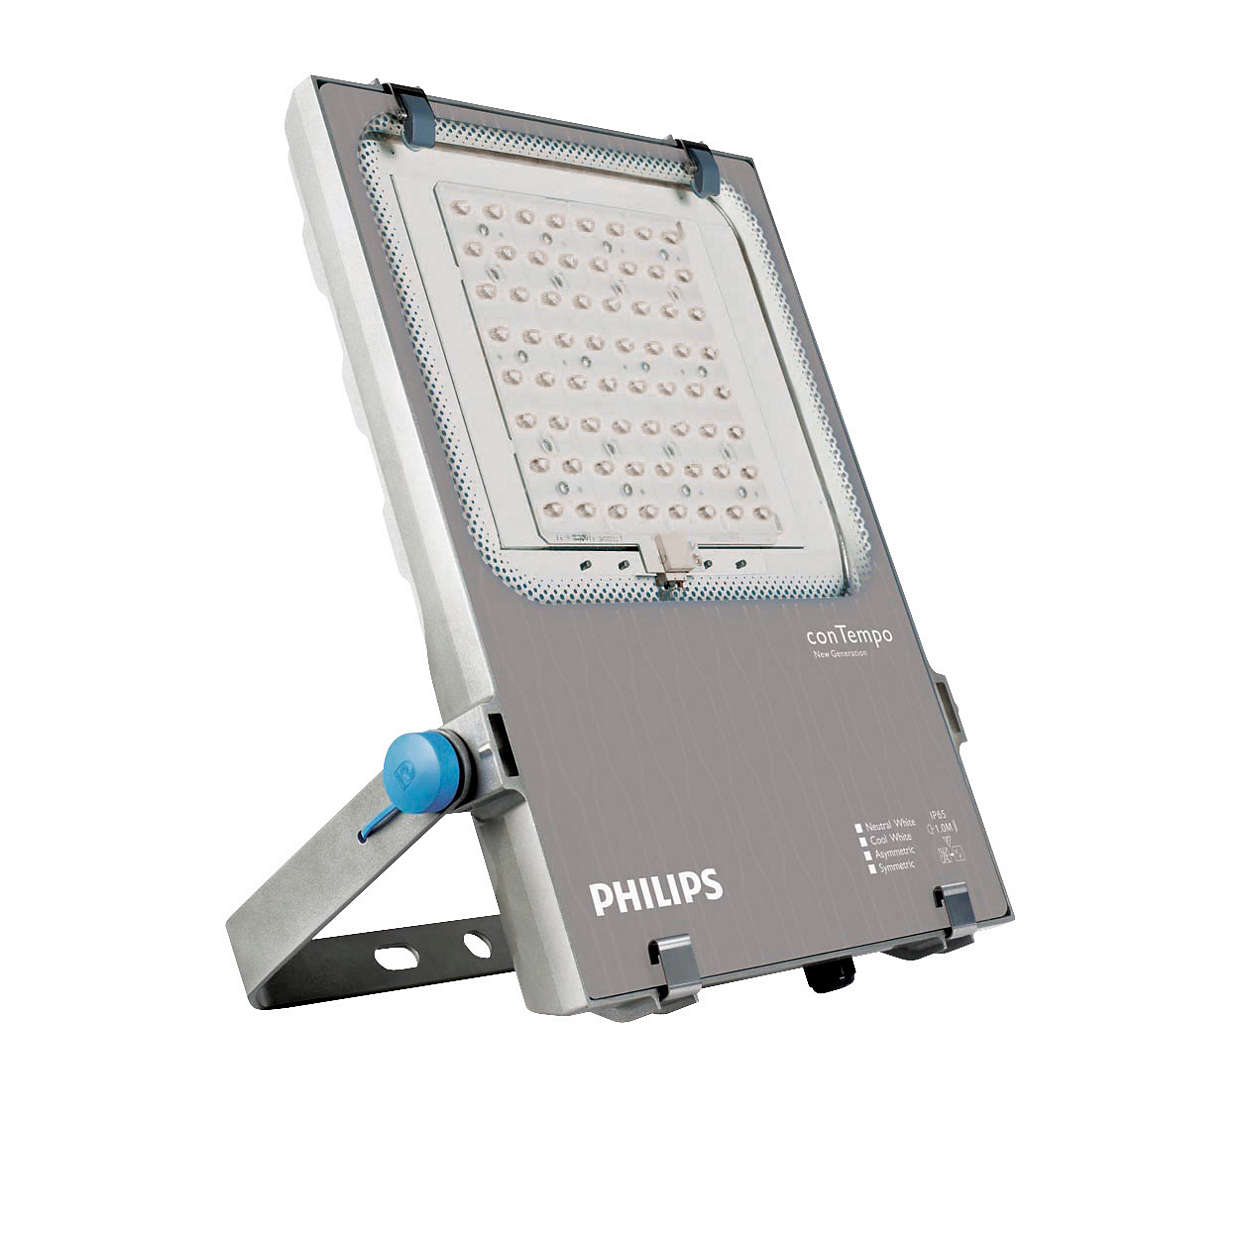 ConTempo LED – energy-saving, reliable outdoor lighting solution